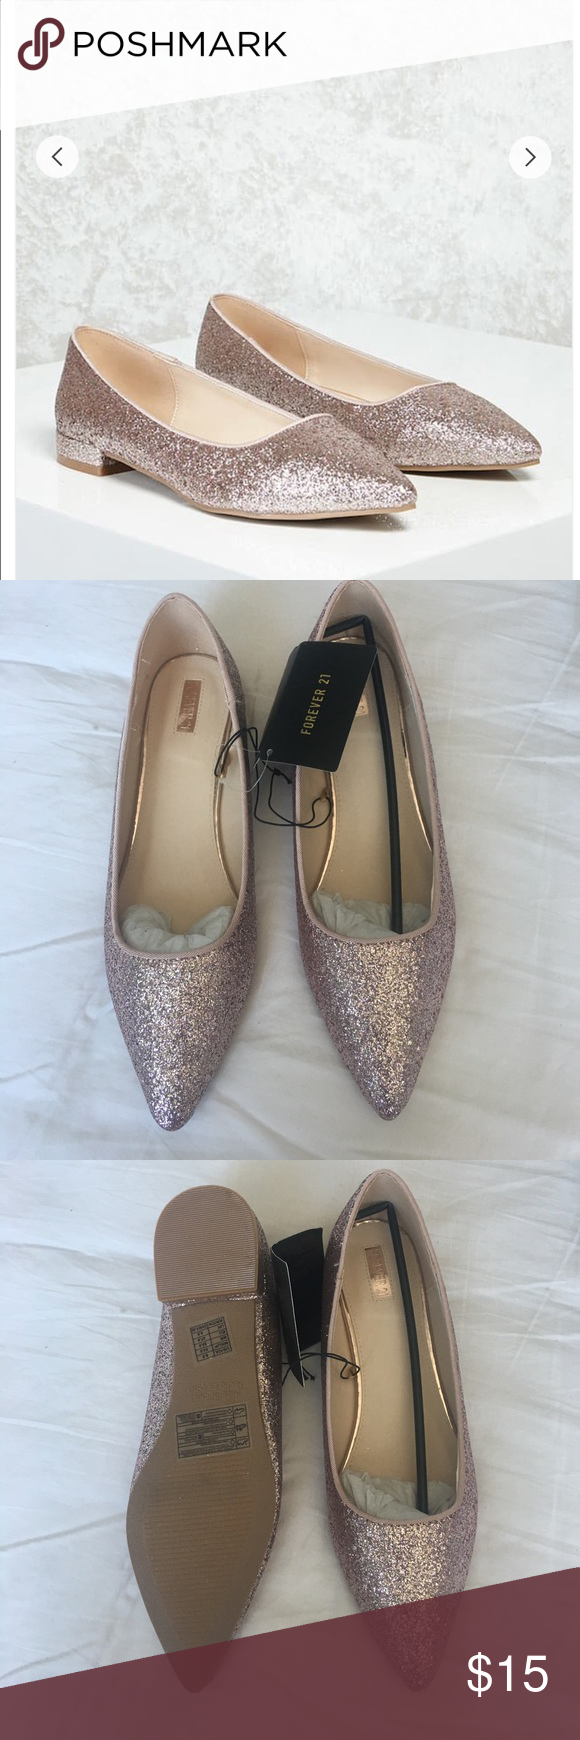 e0cf024d0a5 Metallic Rose Gold Flats Brand New with tags. Bought and never worn. Brand  new with tags. Size 6.5 I am also selling a pair in silver as well. Forever  21 ...